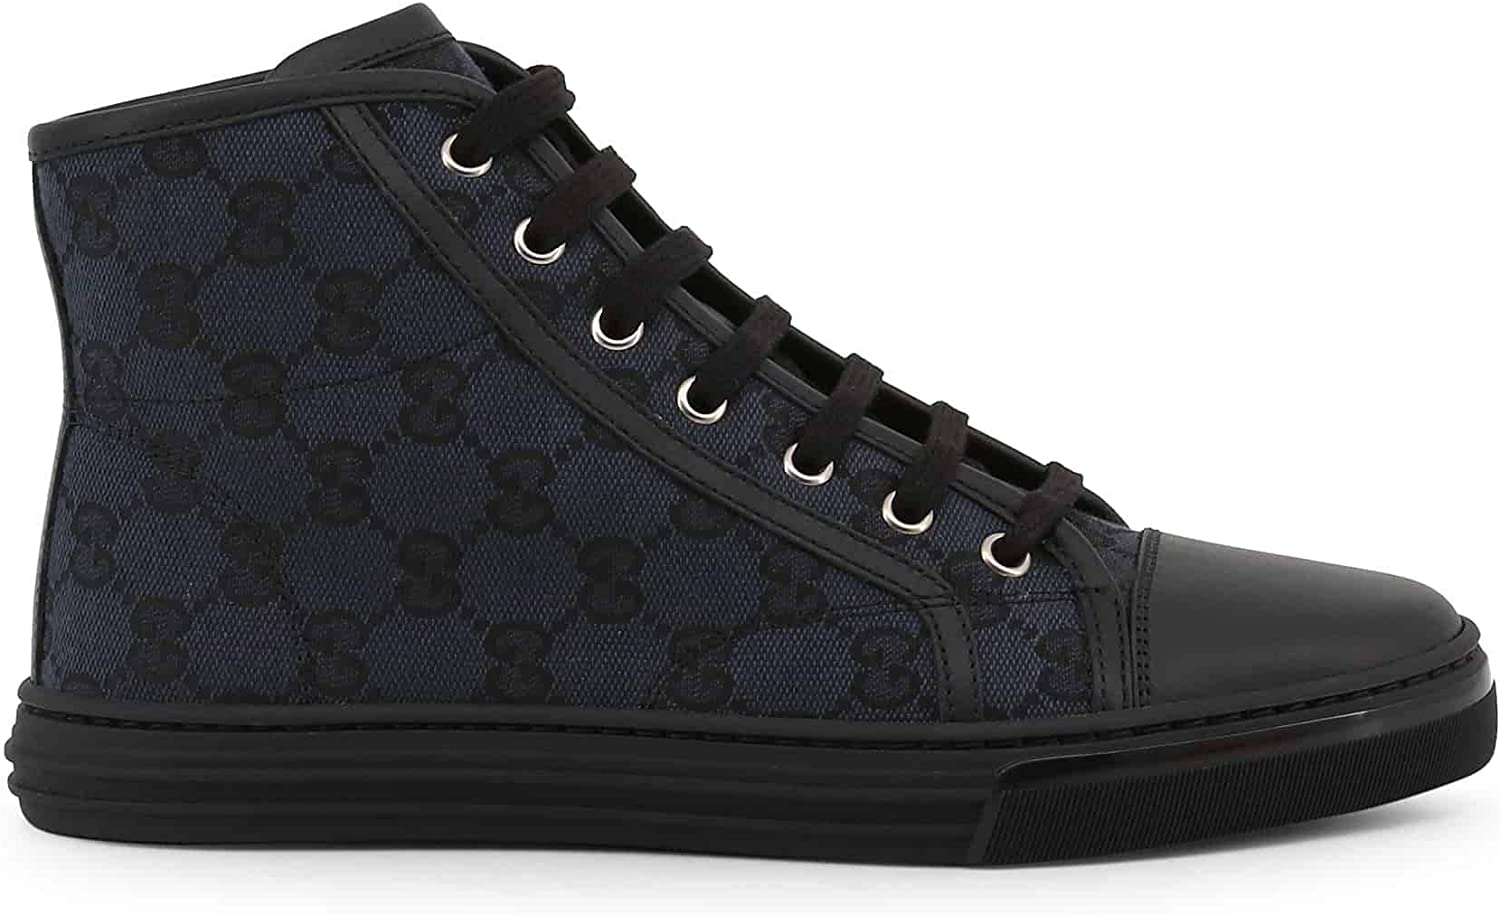 Gucci Sneaker 426186_KQWM0 Mujer